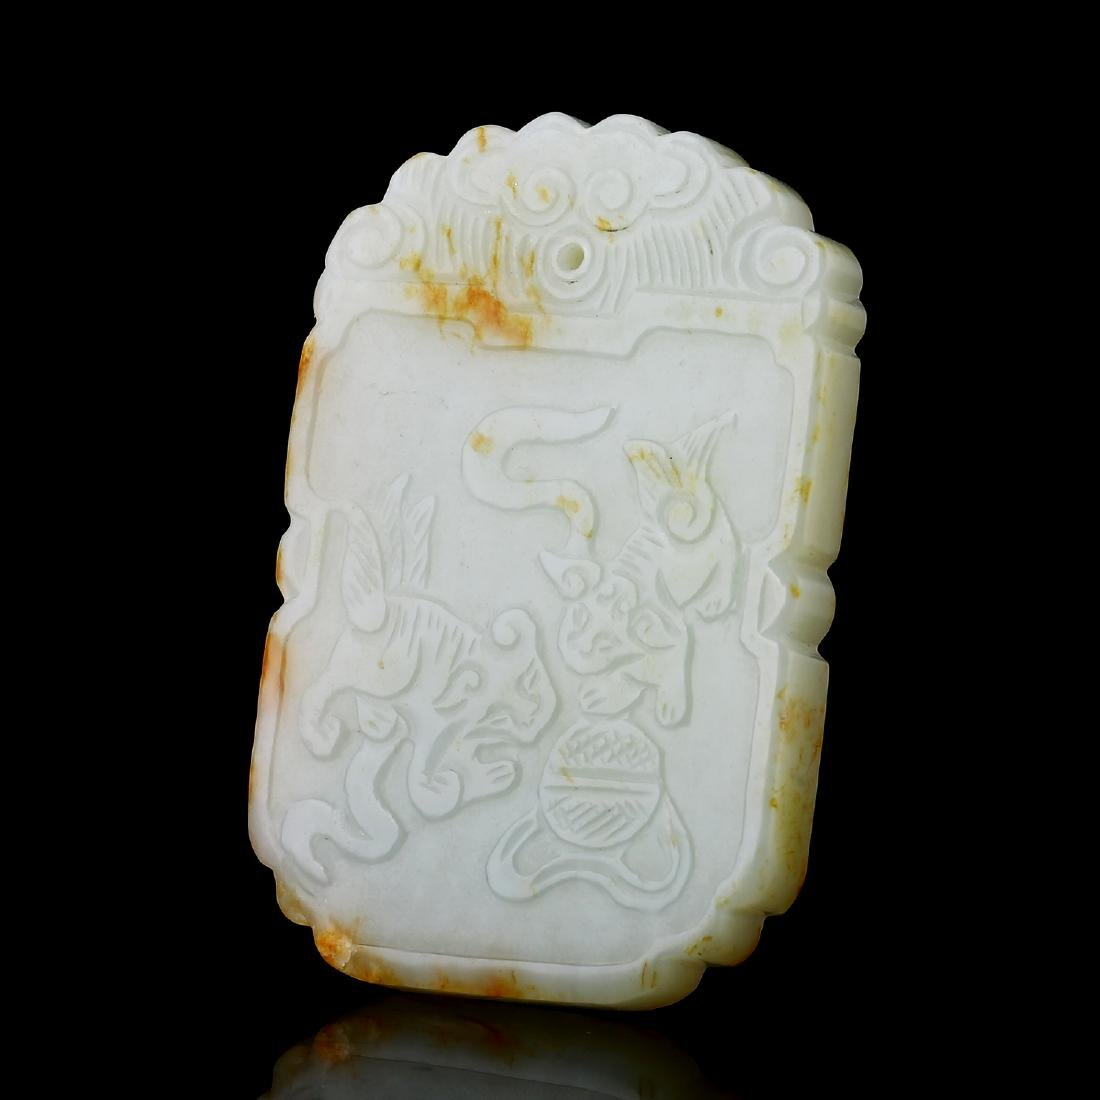 Chinese Qing Dynasty Hetian White Jade Pendant - 6